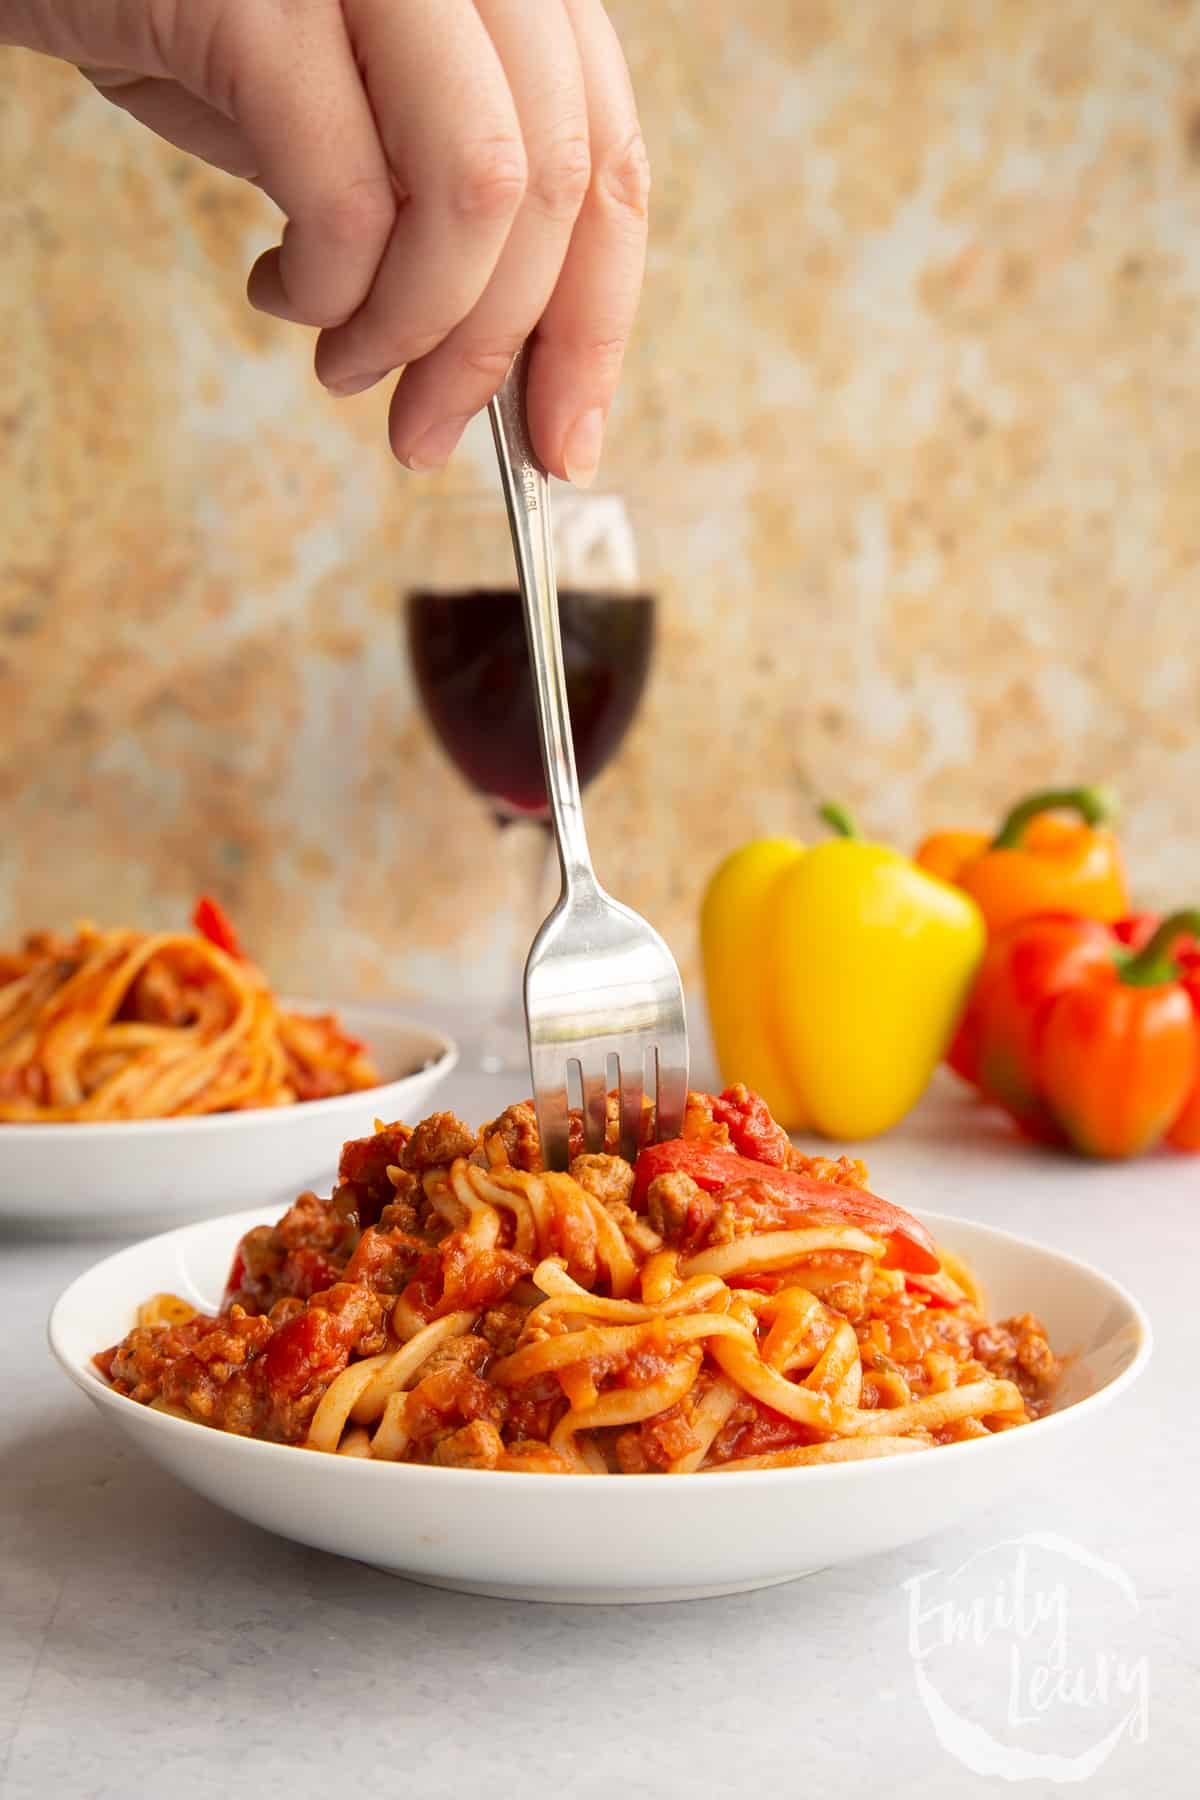 One pot vegan bolognese in a shallow white bowl. A hand holds a fork delving into the bowl.